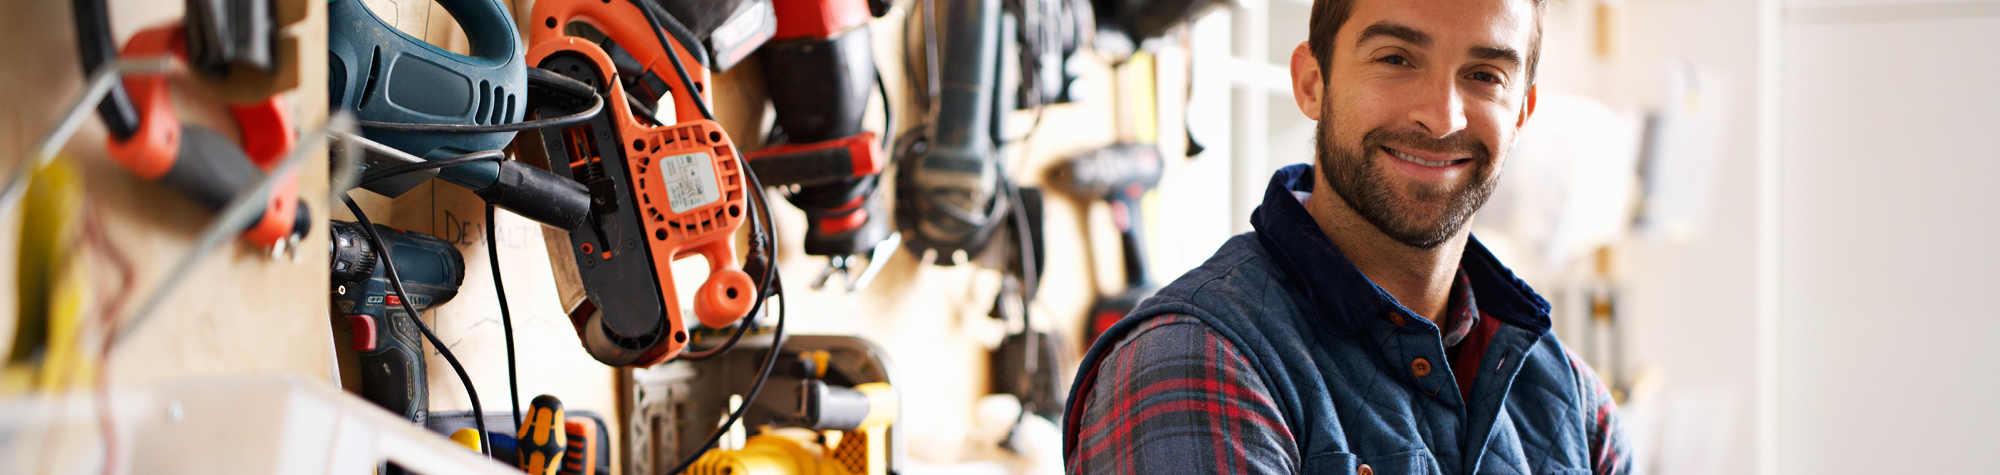 Construction Trades Discipline Header Image. Featuring smiling, male handyman wearing a checked shirt. Also featuring an array of power tools in the background. Representing exceptional construction trades jobs from Search Consultancy.